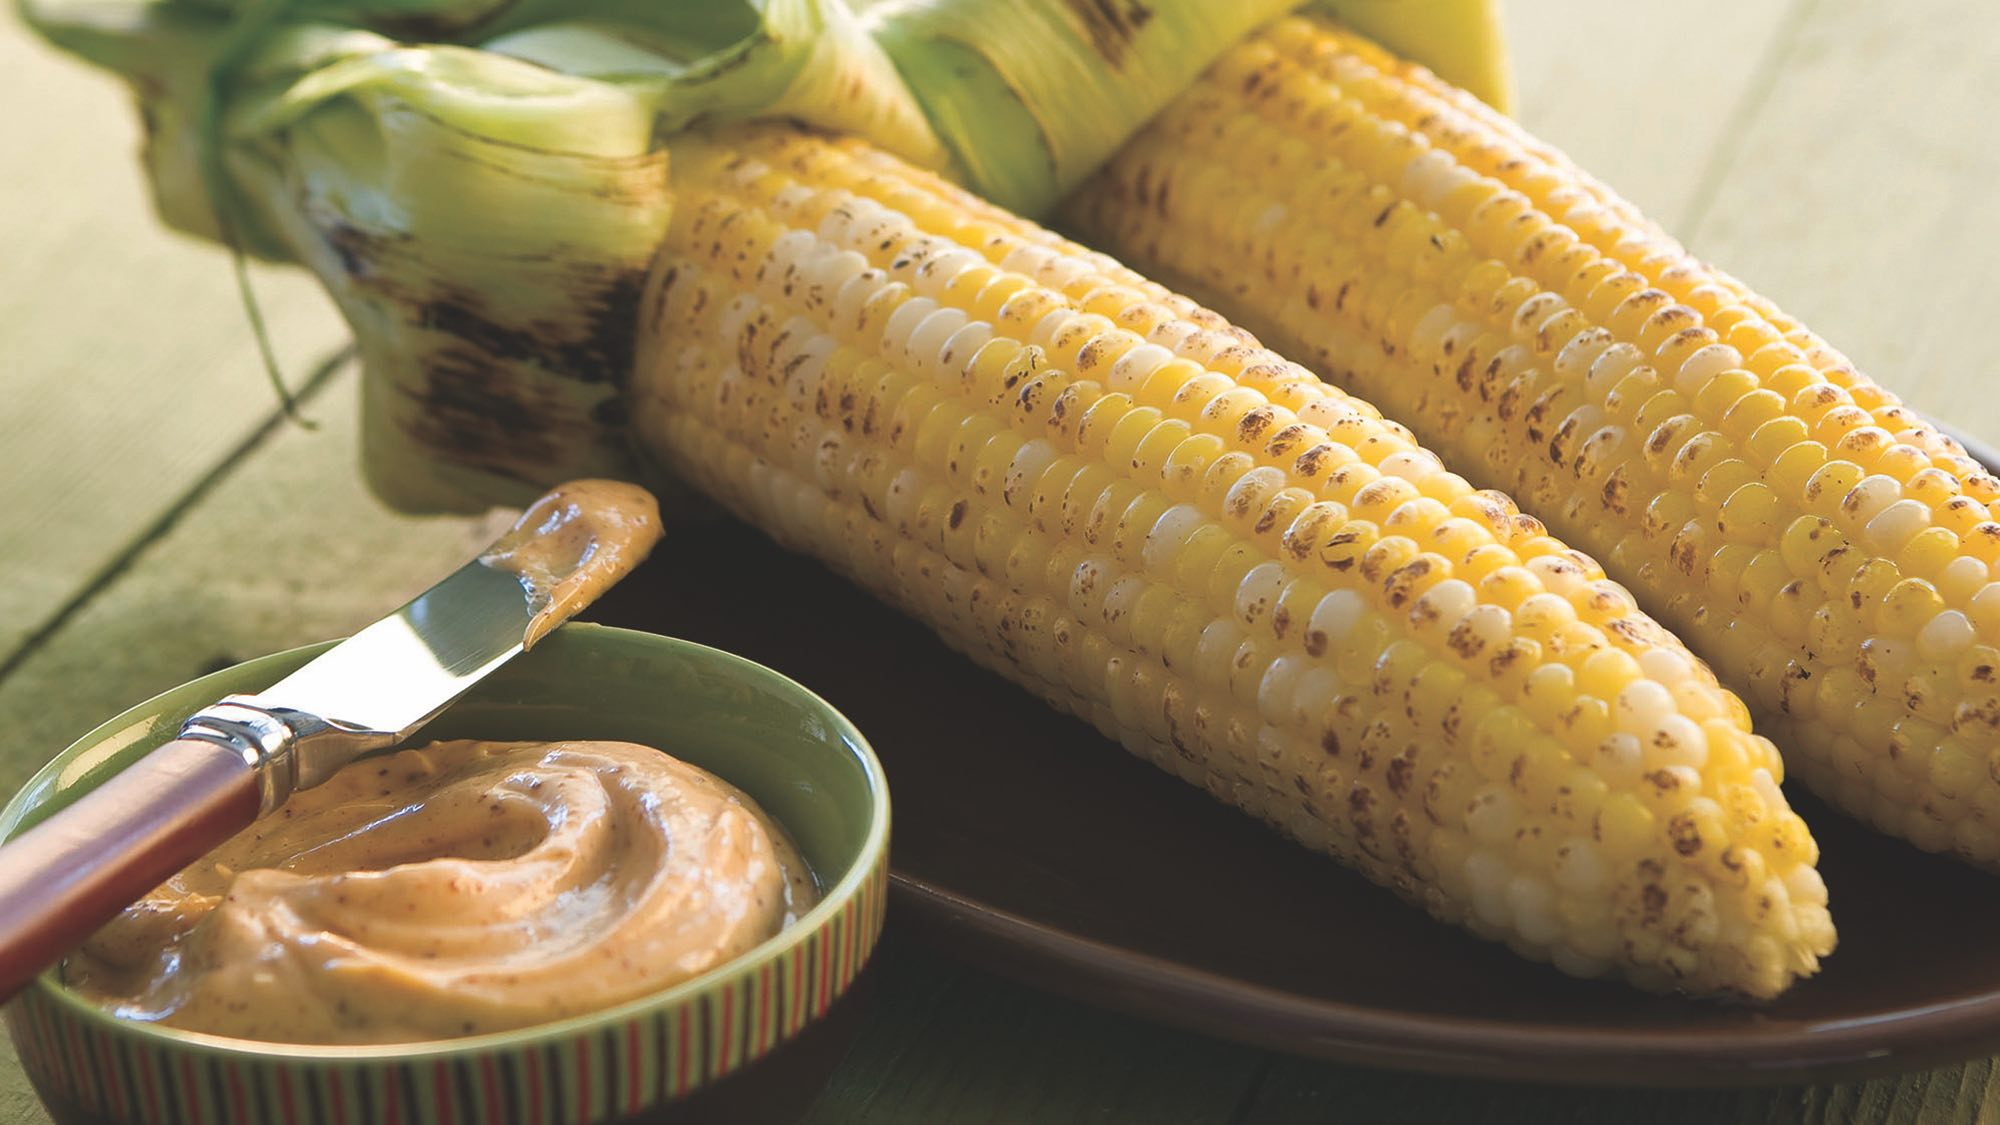 McCormick Grilled Mexican-Style Corn on the Cob with Lime Mayonnaise